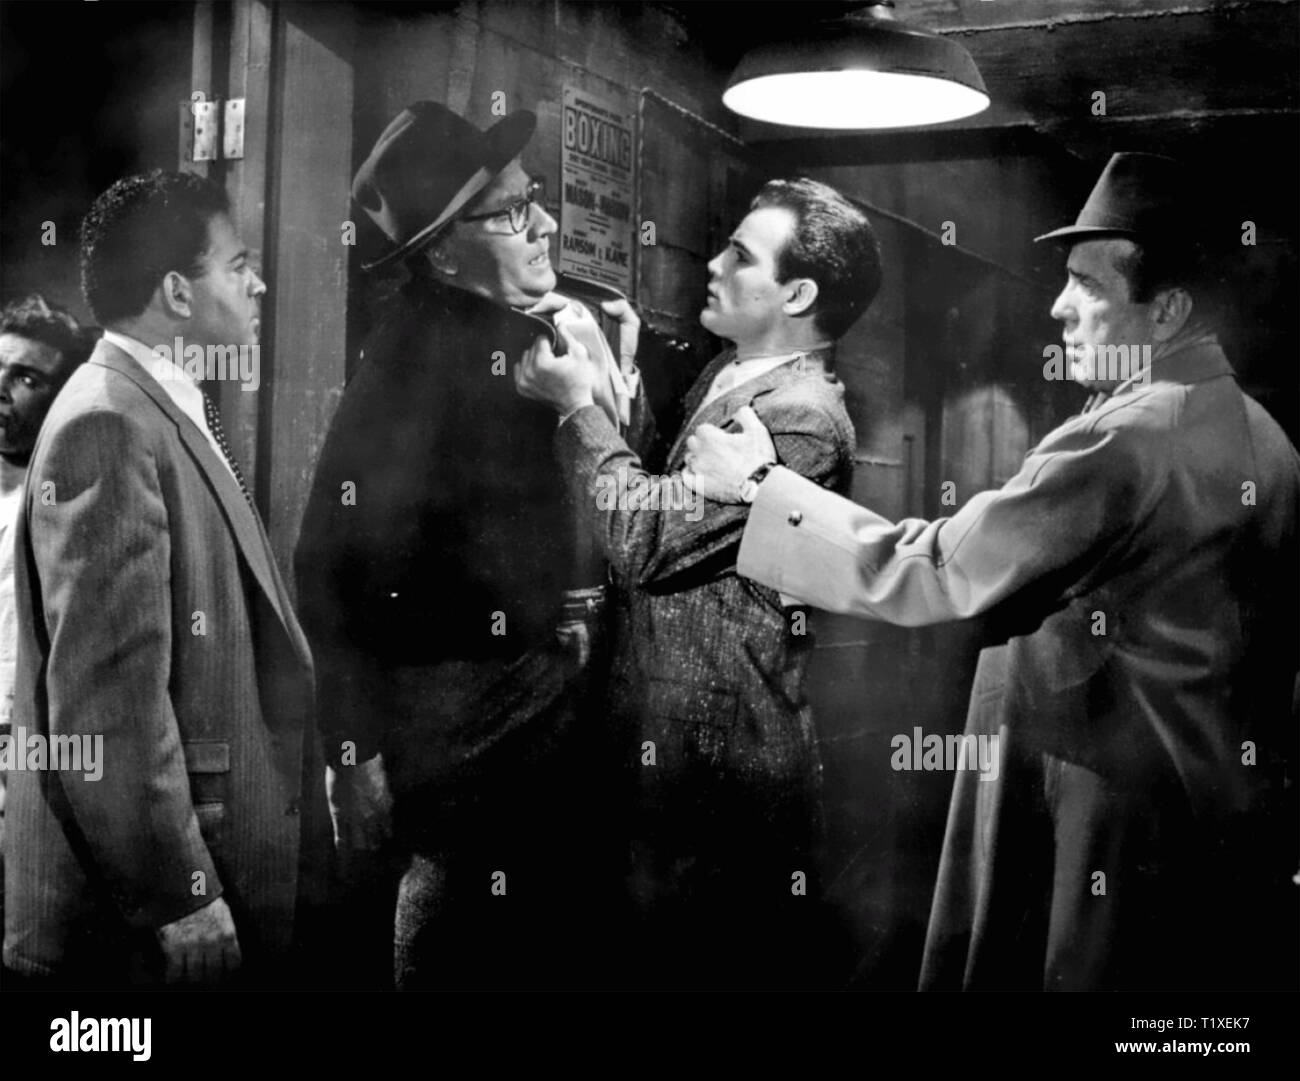 THE HARDER THEY FALL 1956 Columbia Pictures film with Humphrey Bogart at right - Stock Image